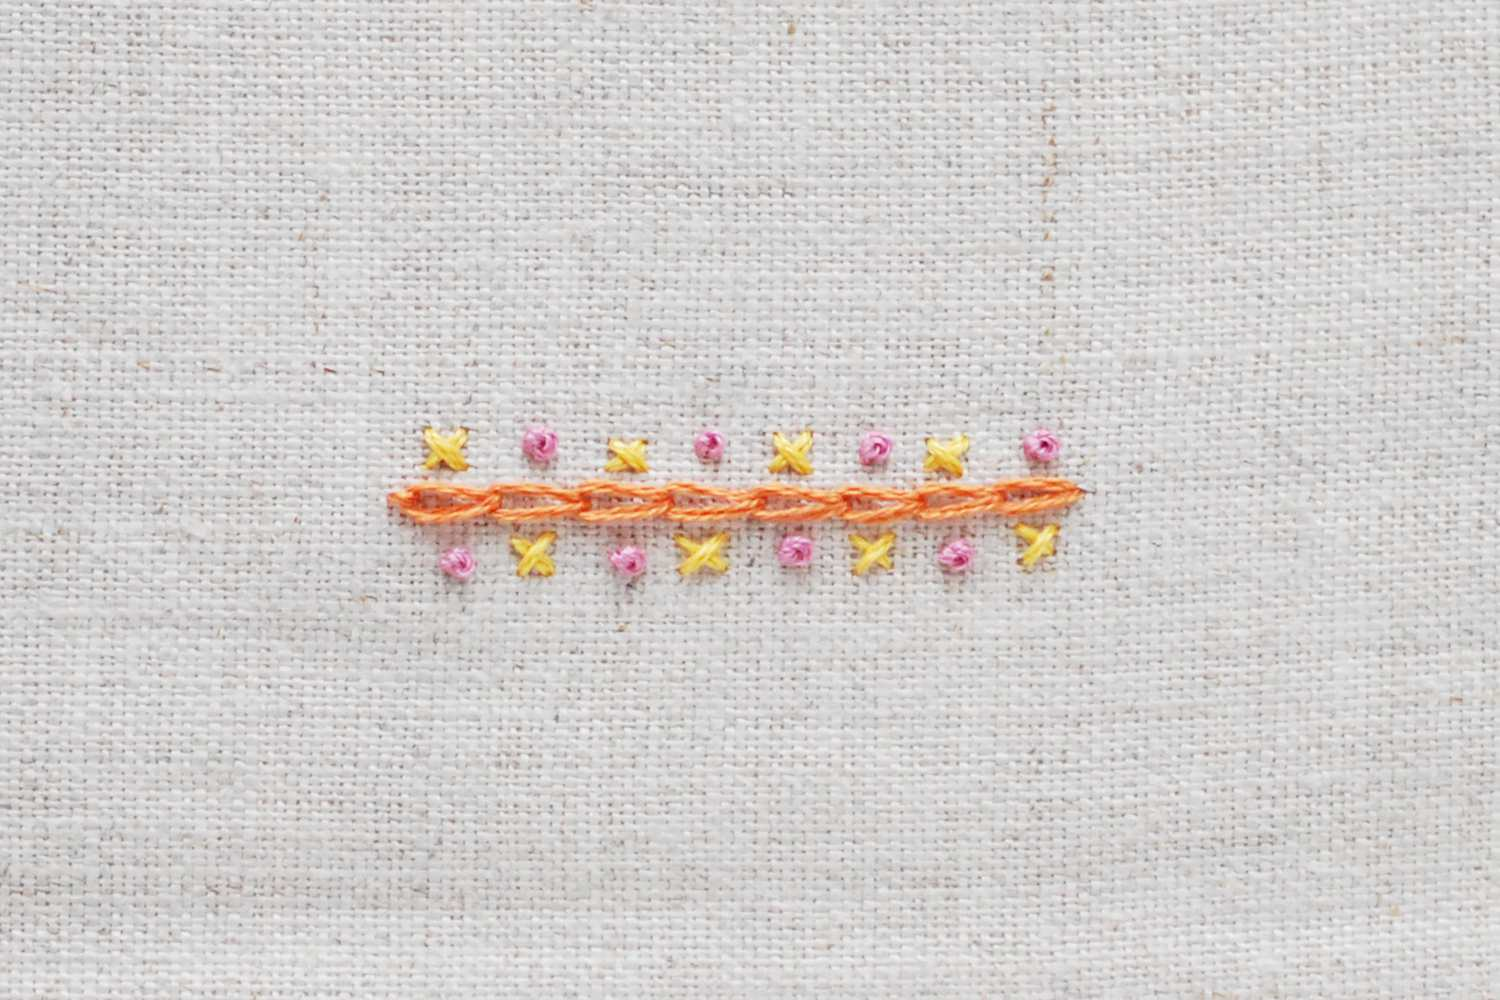 French Knots, Chain and Cross Stitches